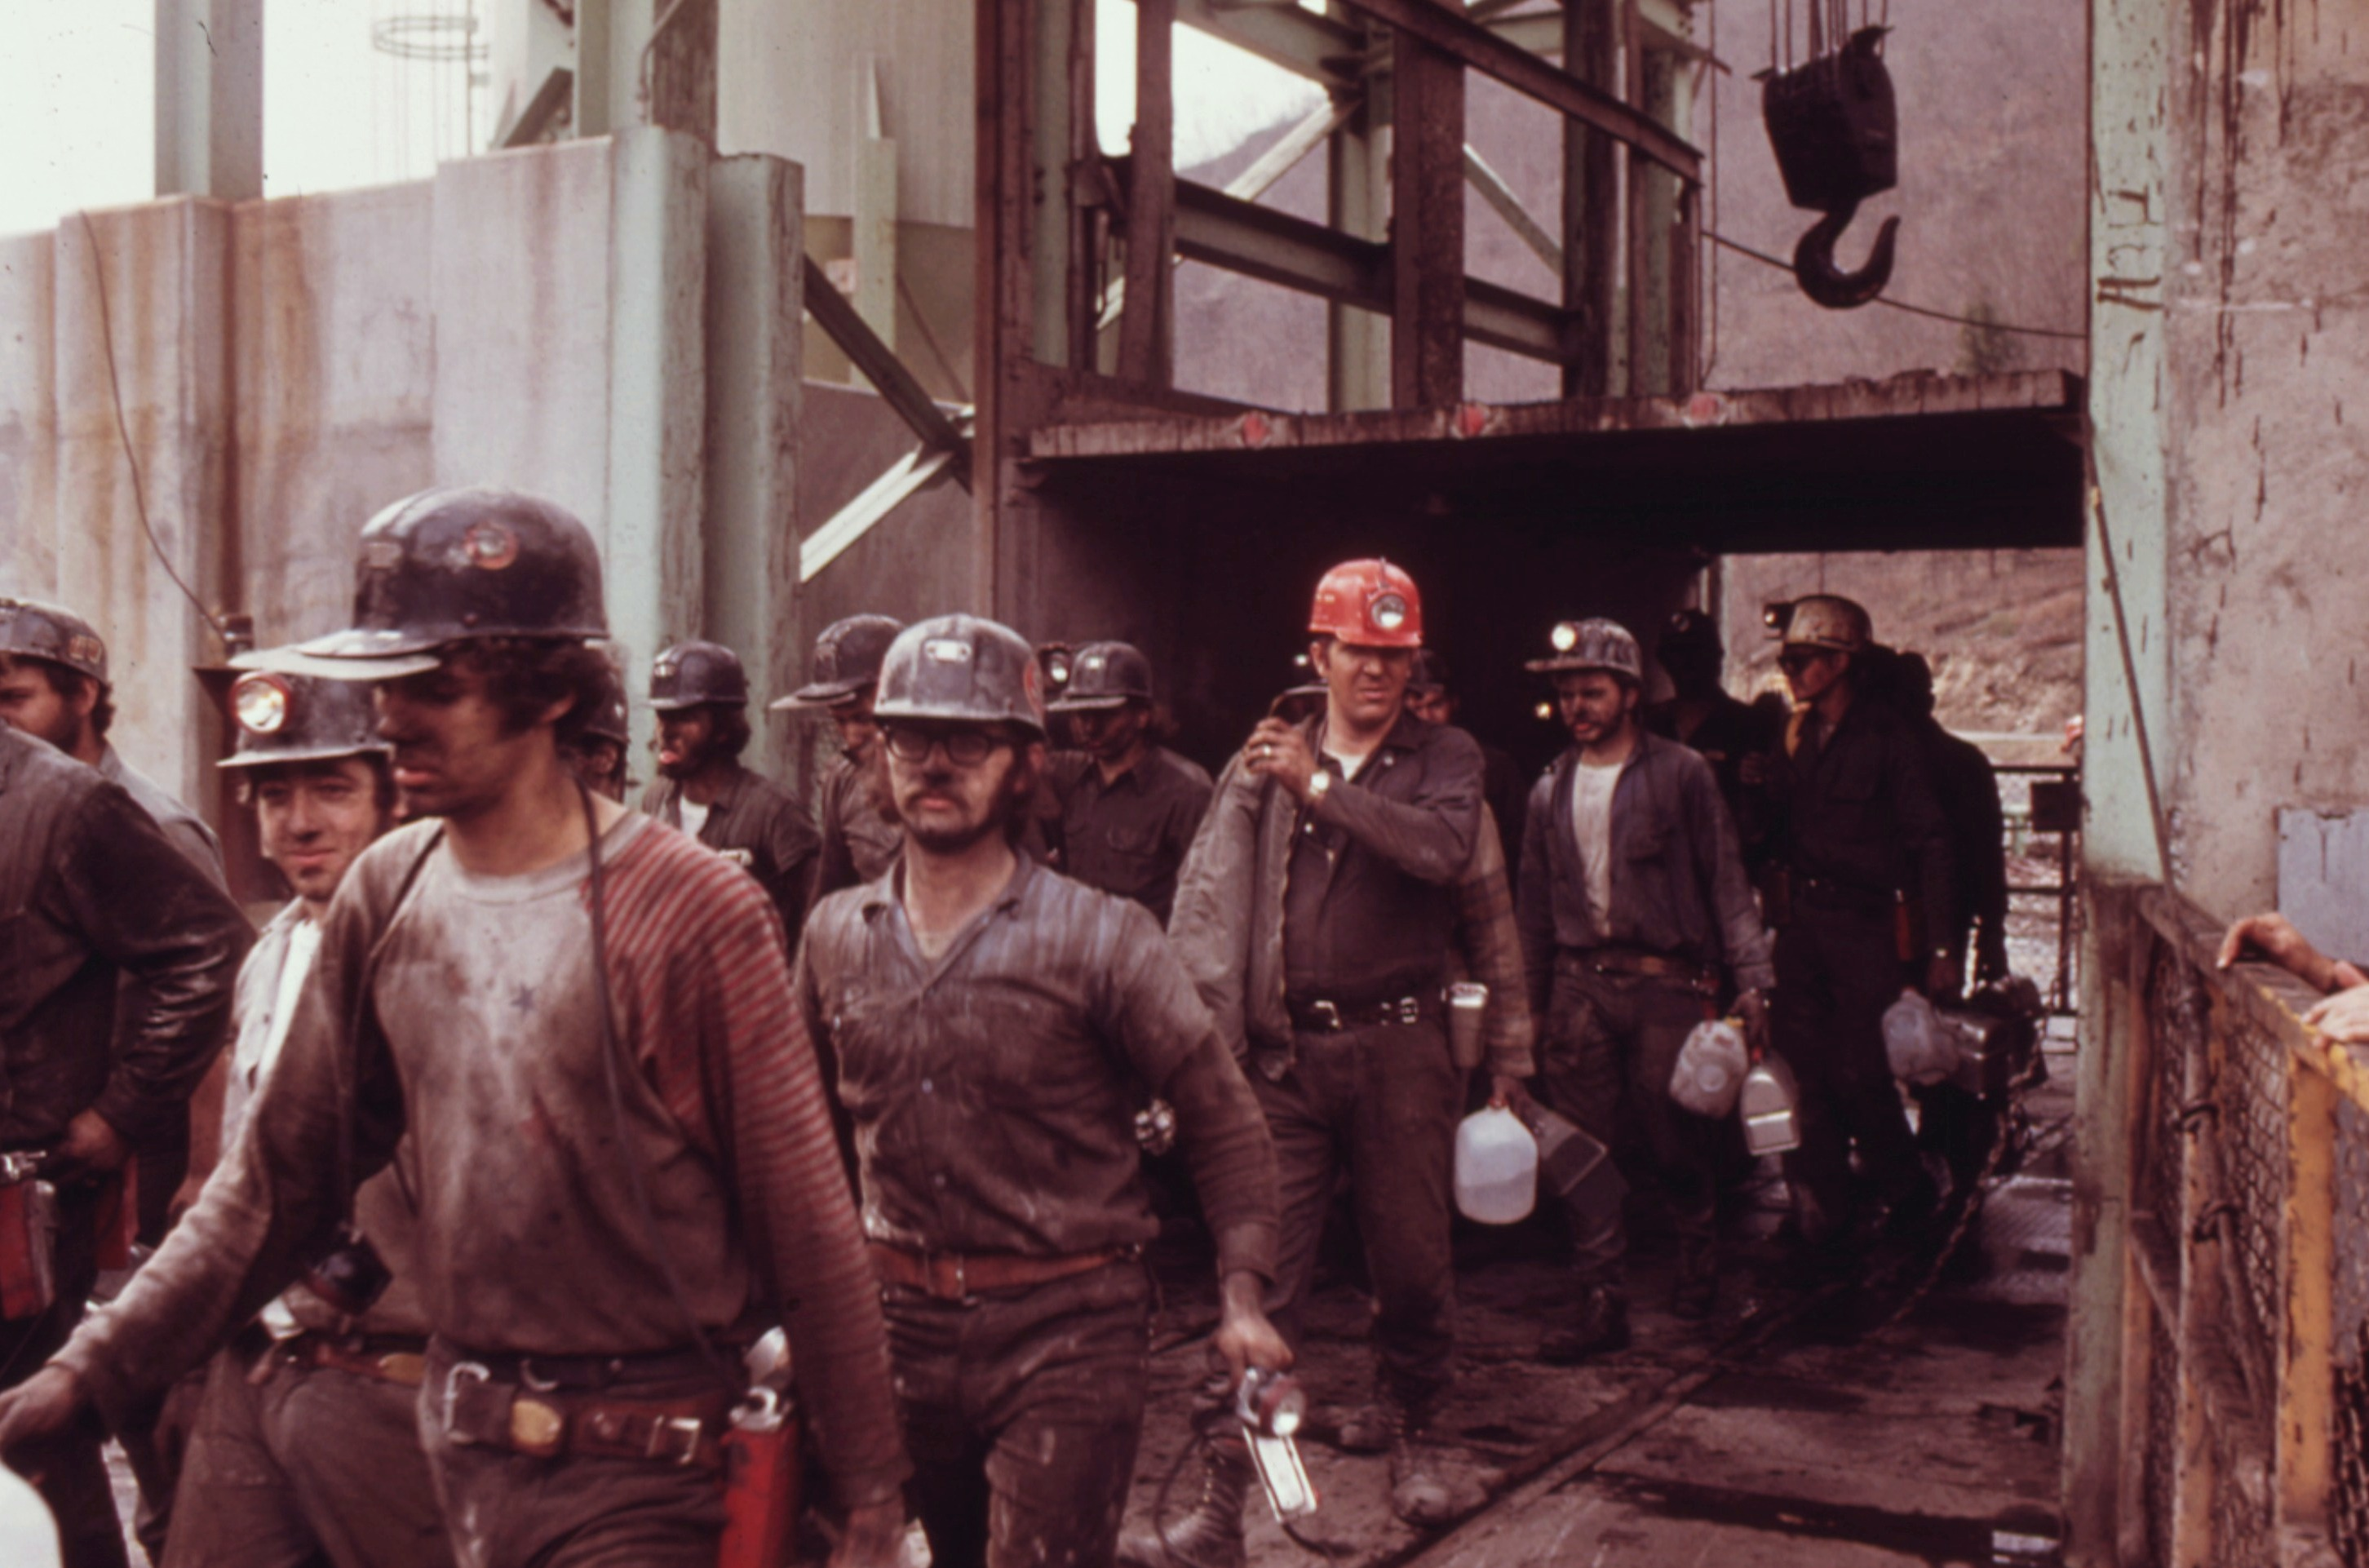 File:FIRST SHIFT OF MINERS AT THE VIRGINIA-POCAHONTAS COAL